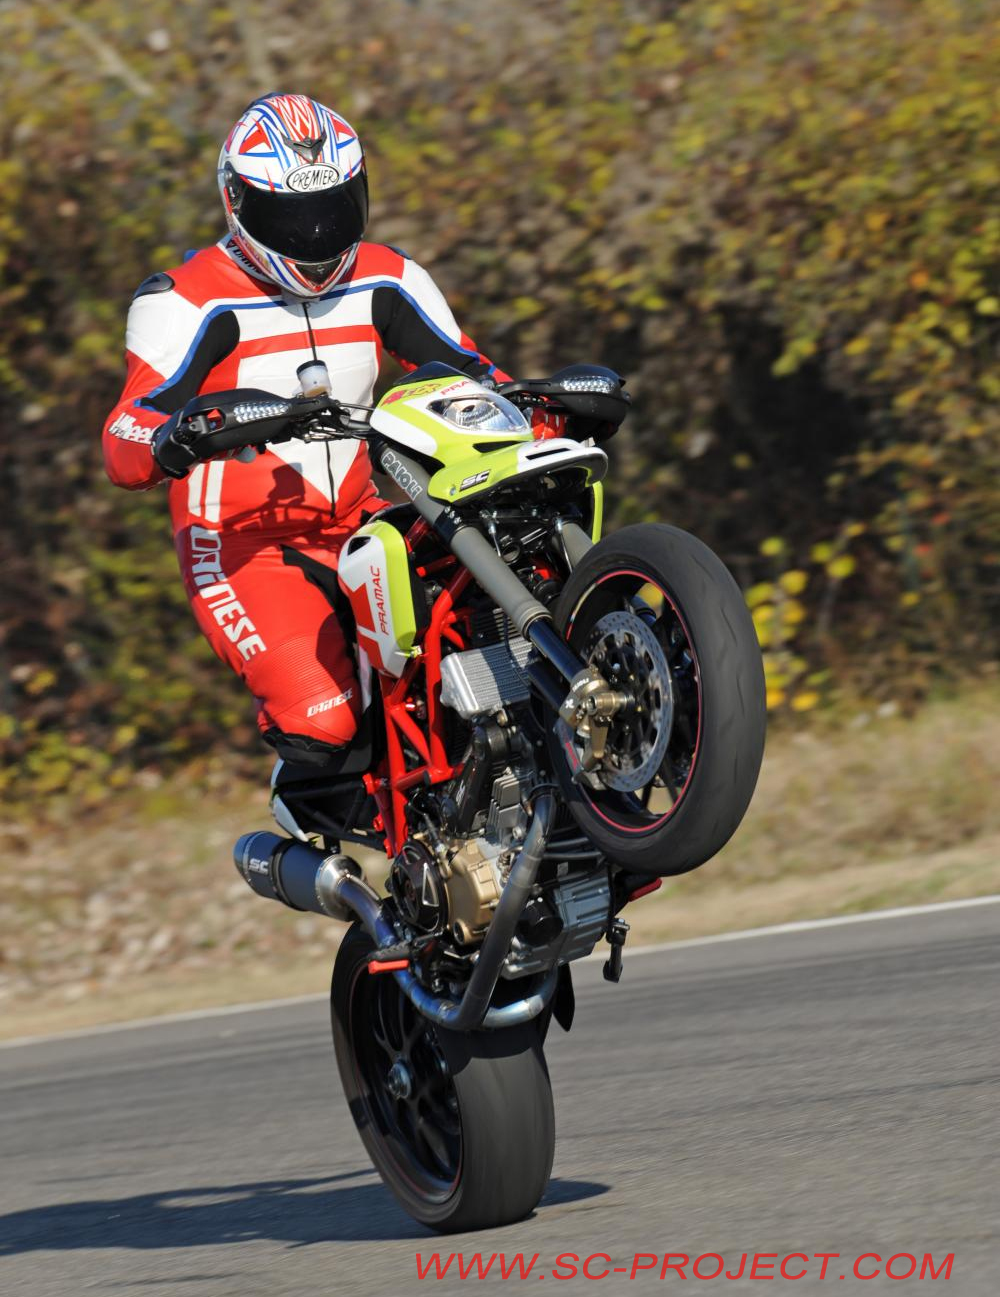 Ducati Hypermotard 1100 EVO SP 2011 images #79405